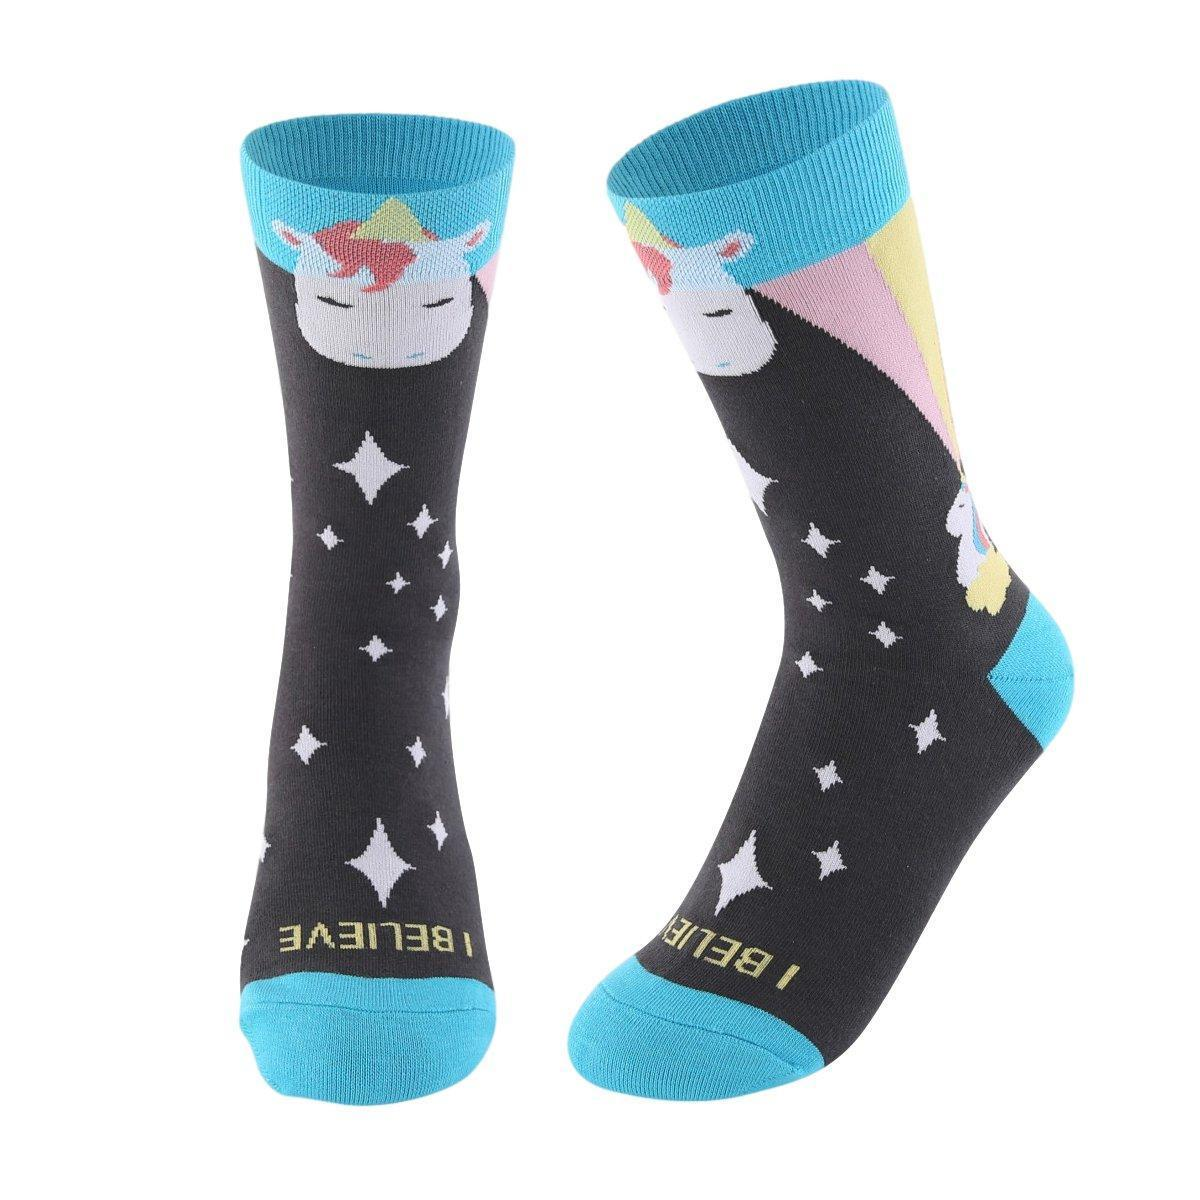 I Believe in Unicorns Women's Crew Socks-UPKIWI